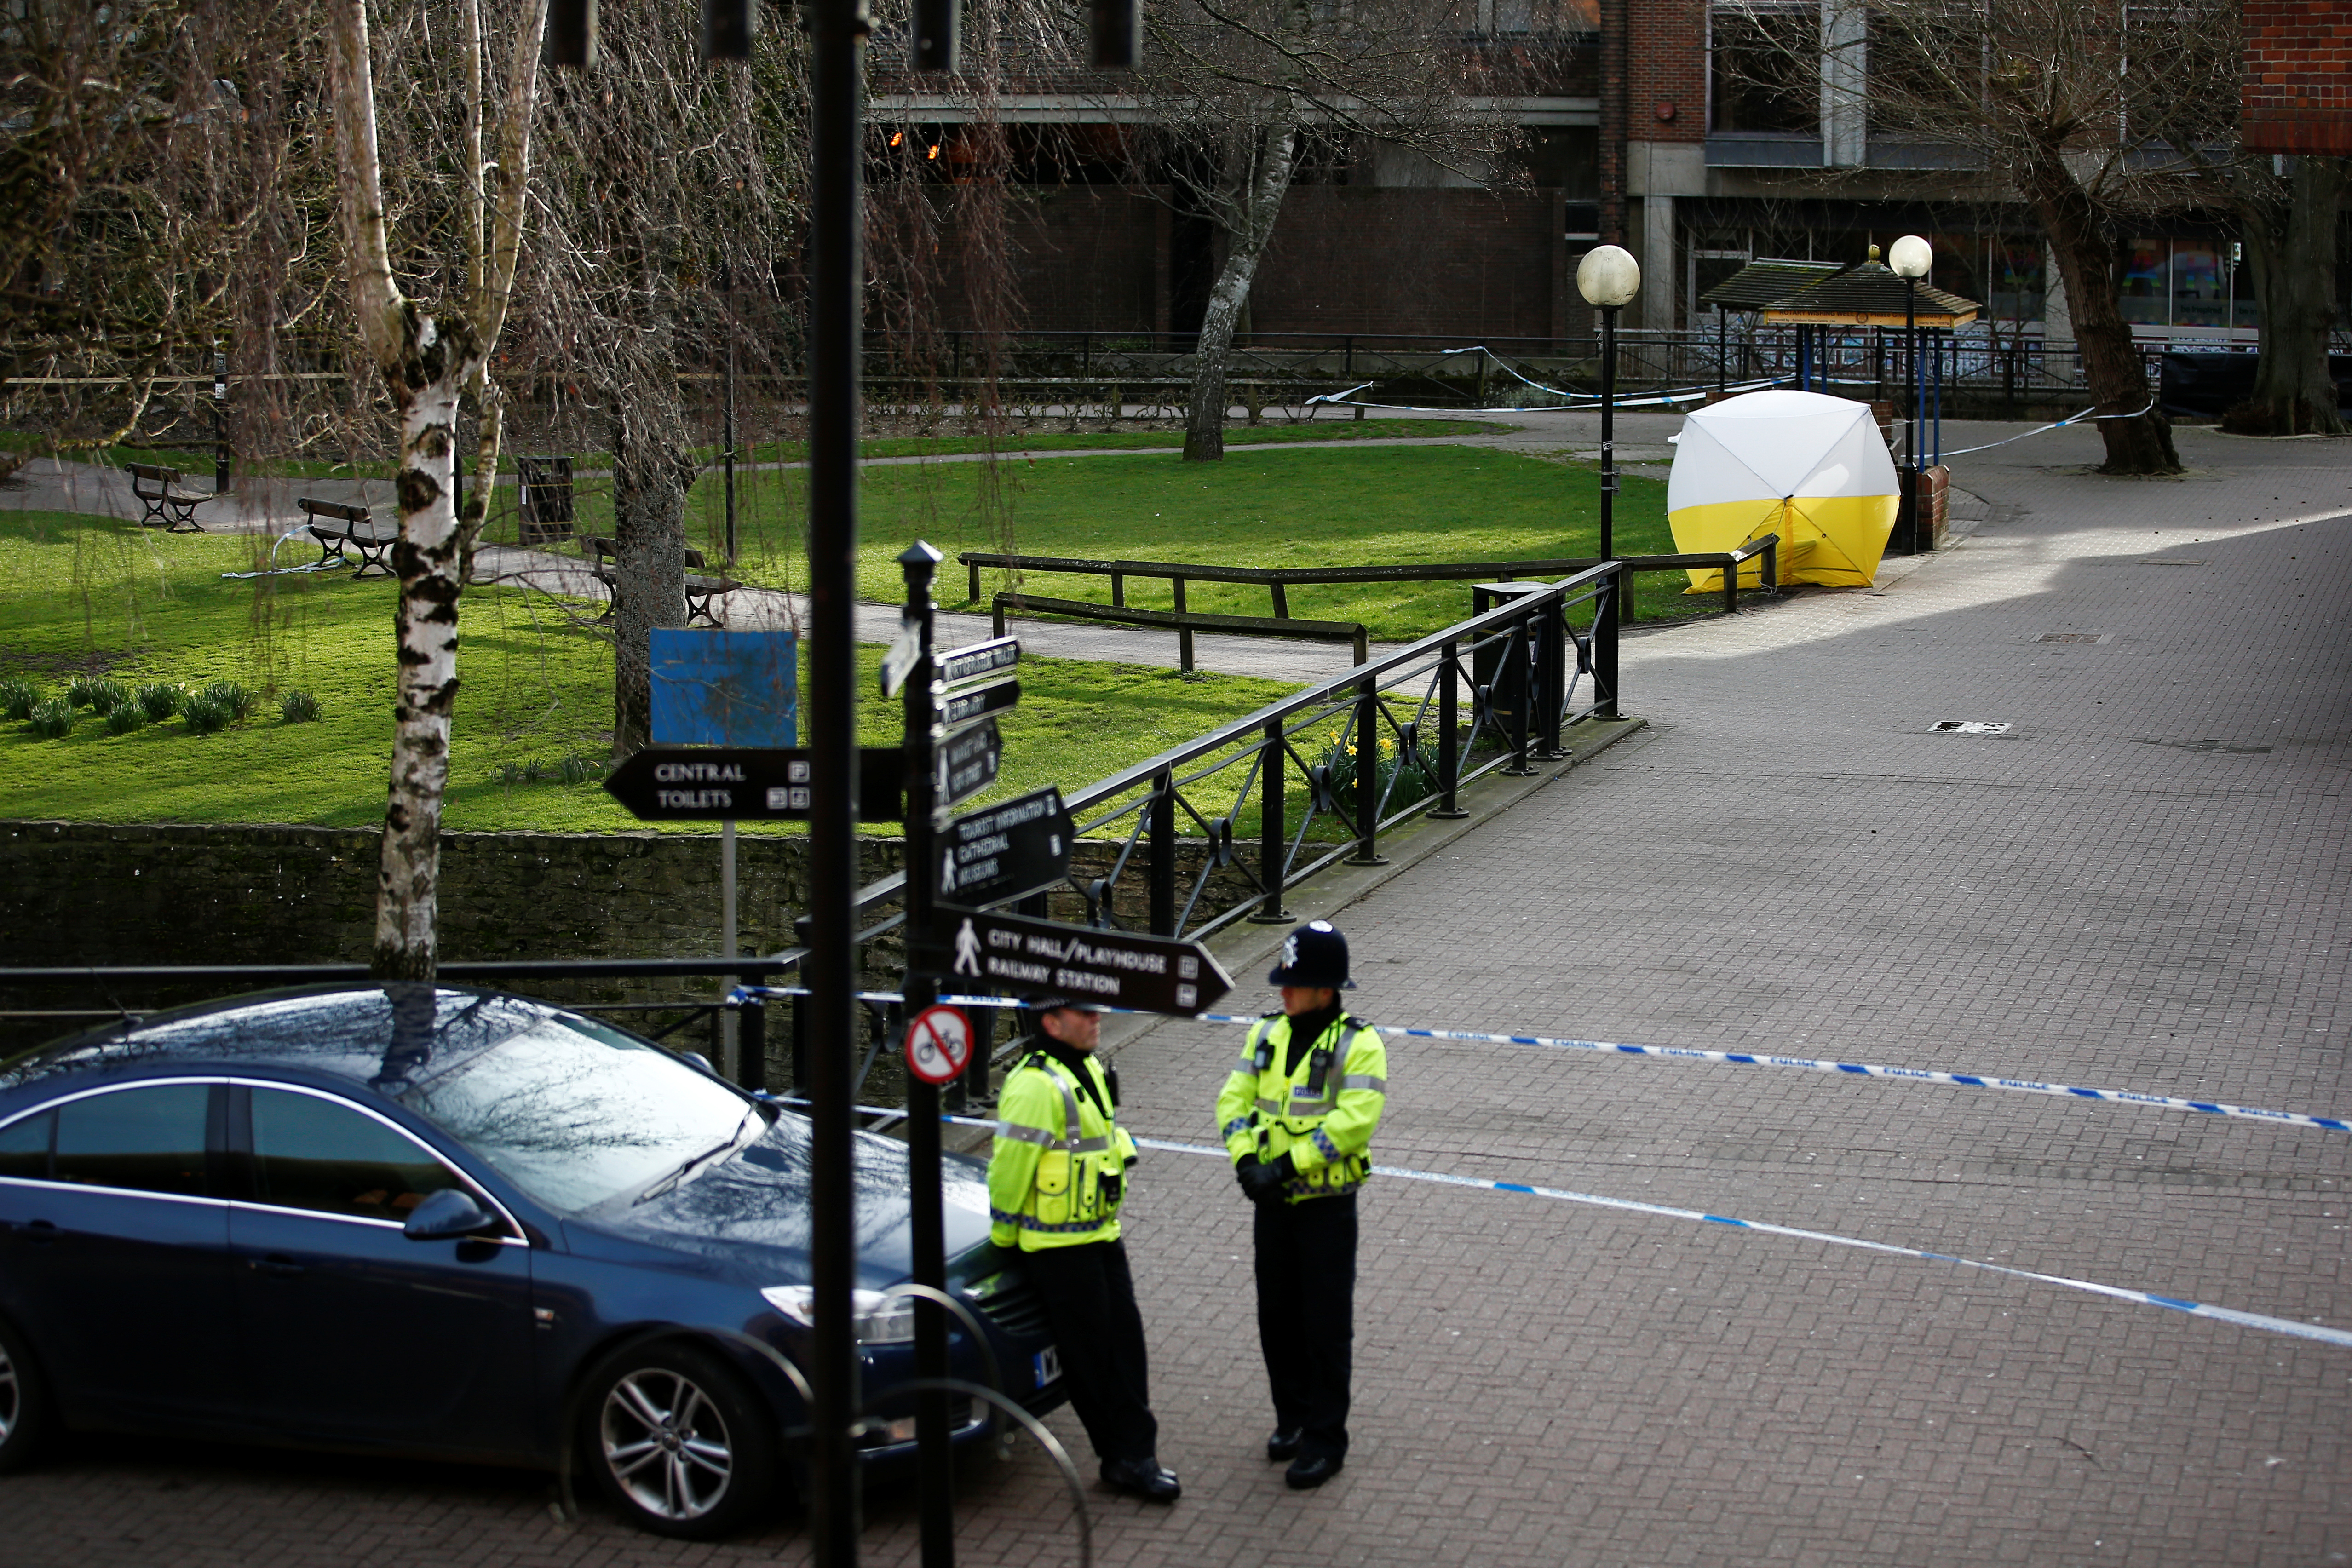 A police officer stands at a cordon around the bench where former Russian intelligence agent Sergei Skripal and his daughter Yulia were found after they were poisoned, in Salisbury, Britain March 14, 2018. REUTERS/Henry Nicholls